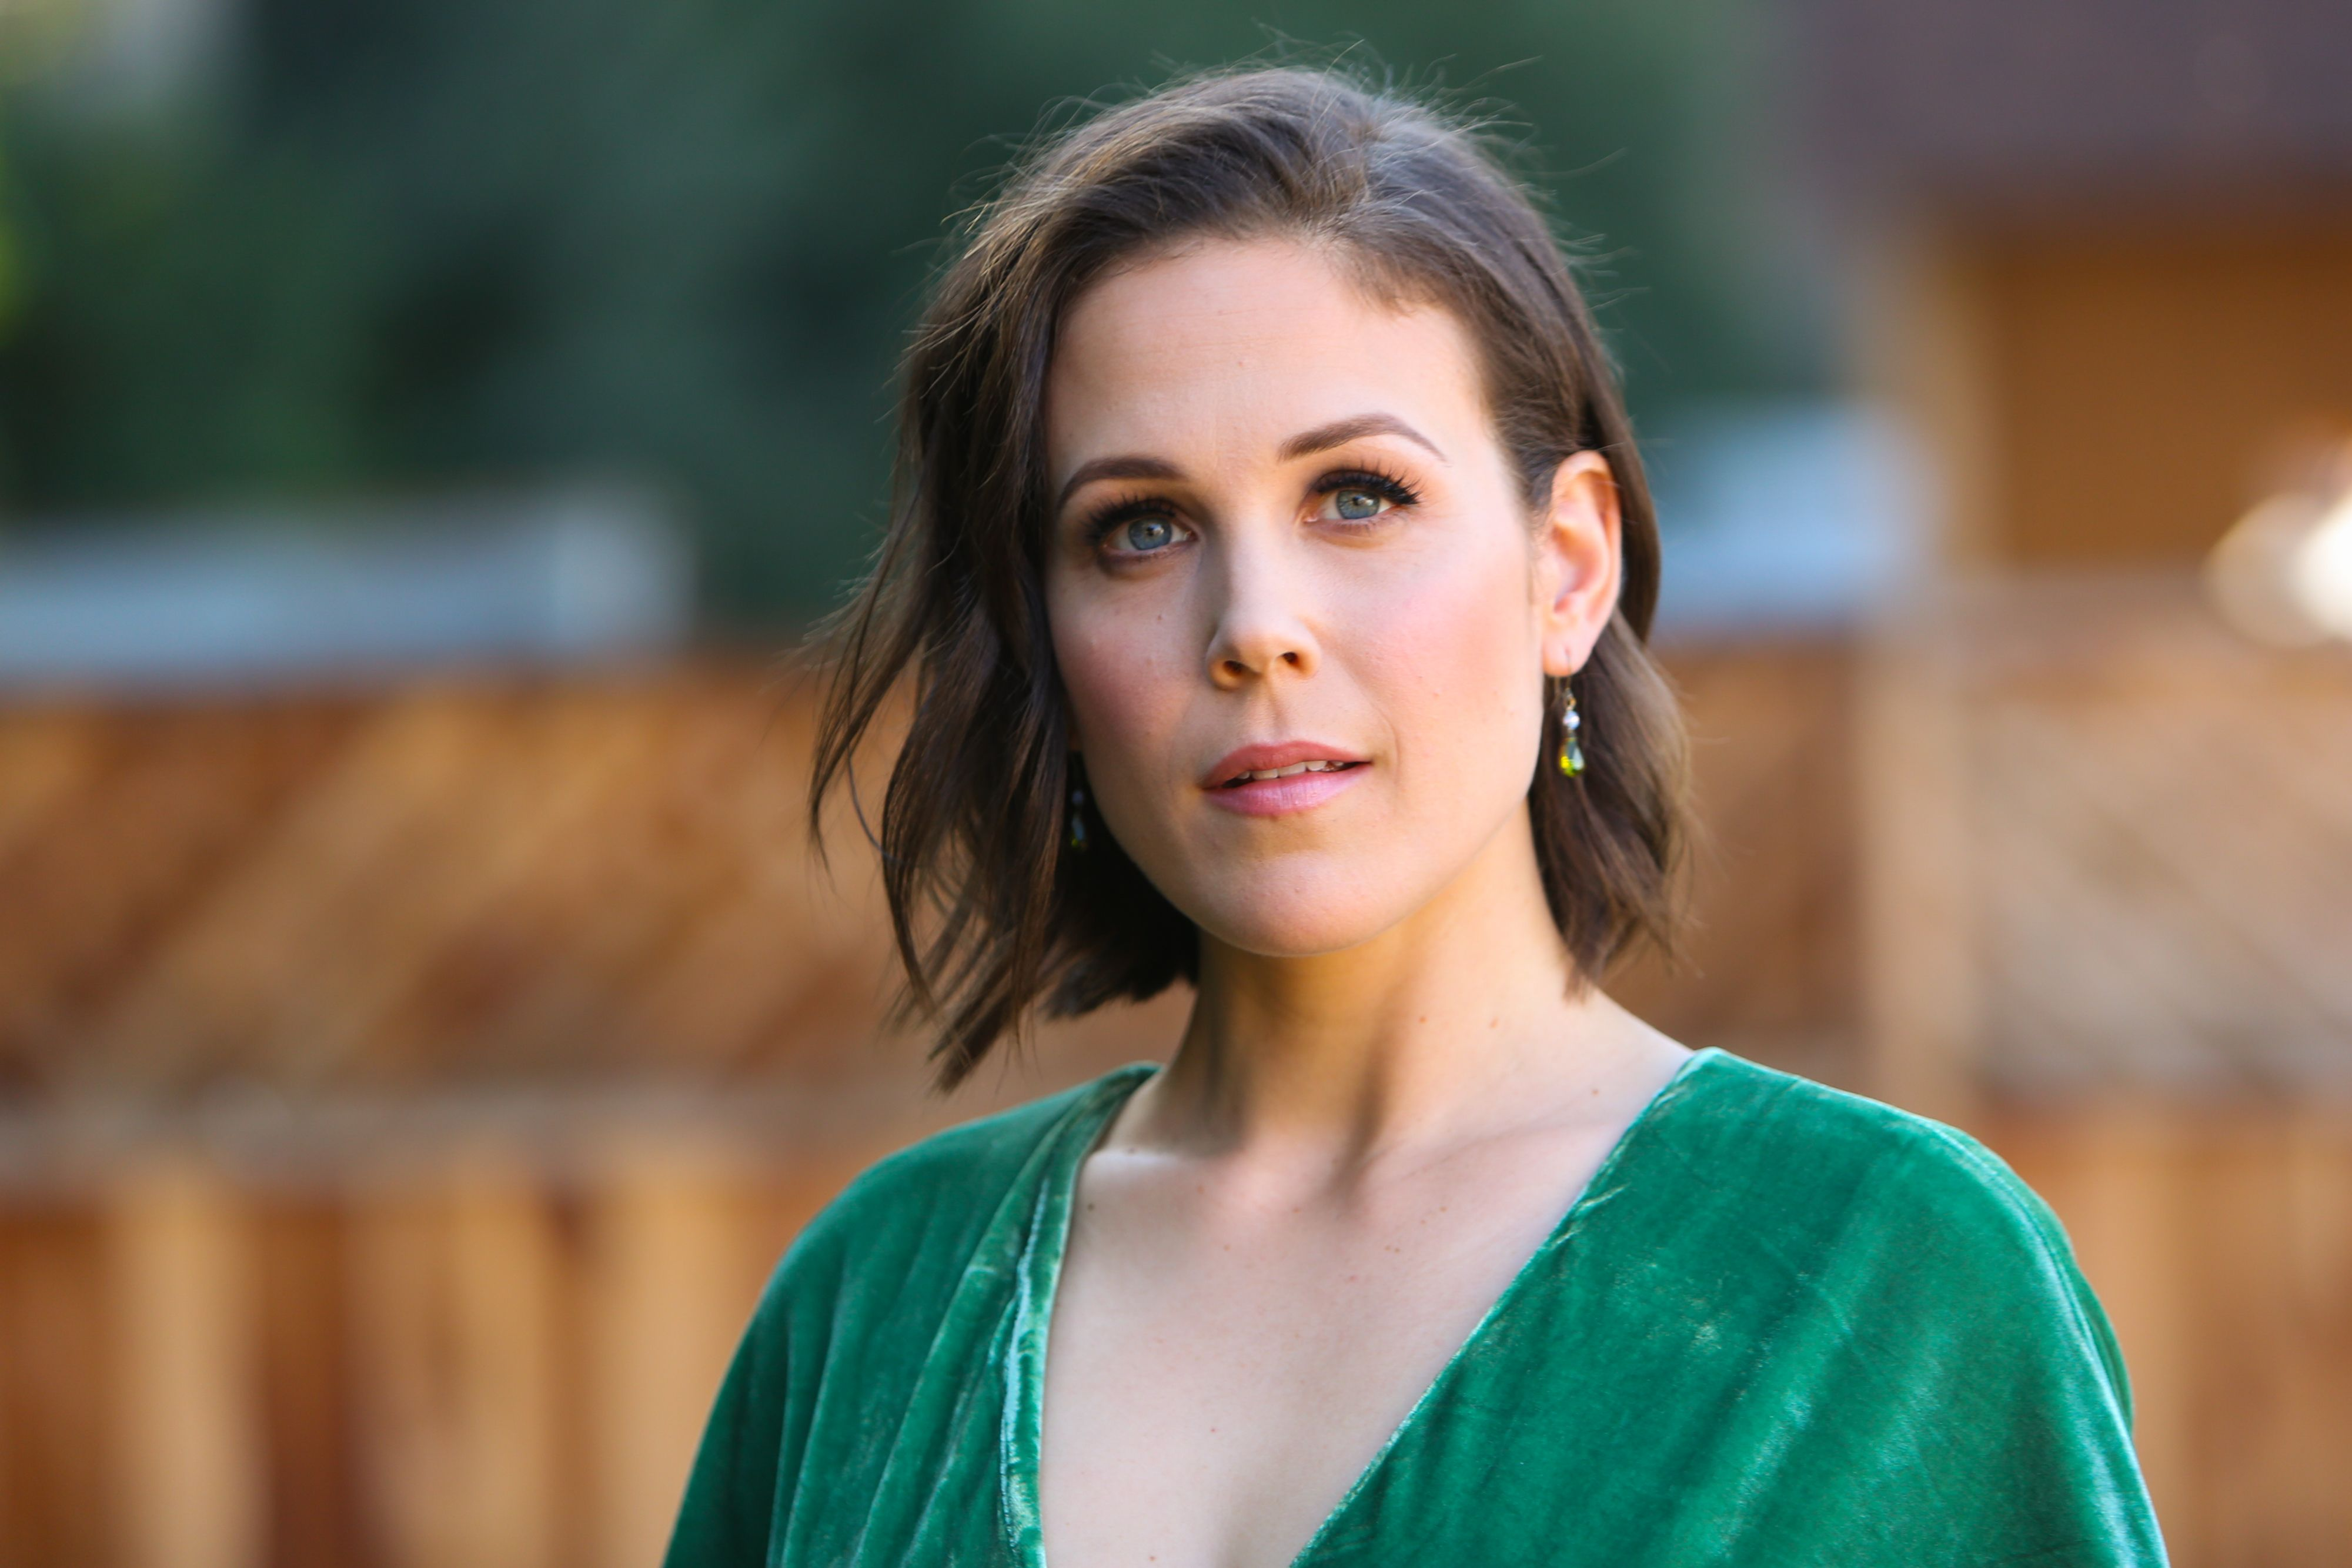 'When Calls the Heart' Star Erin Krakow Shares Sultry Pictures from New Photoshoot